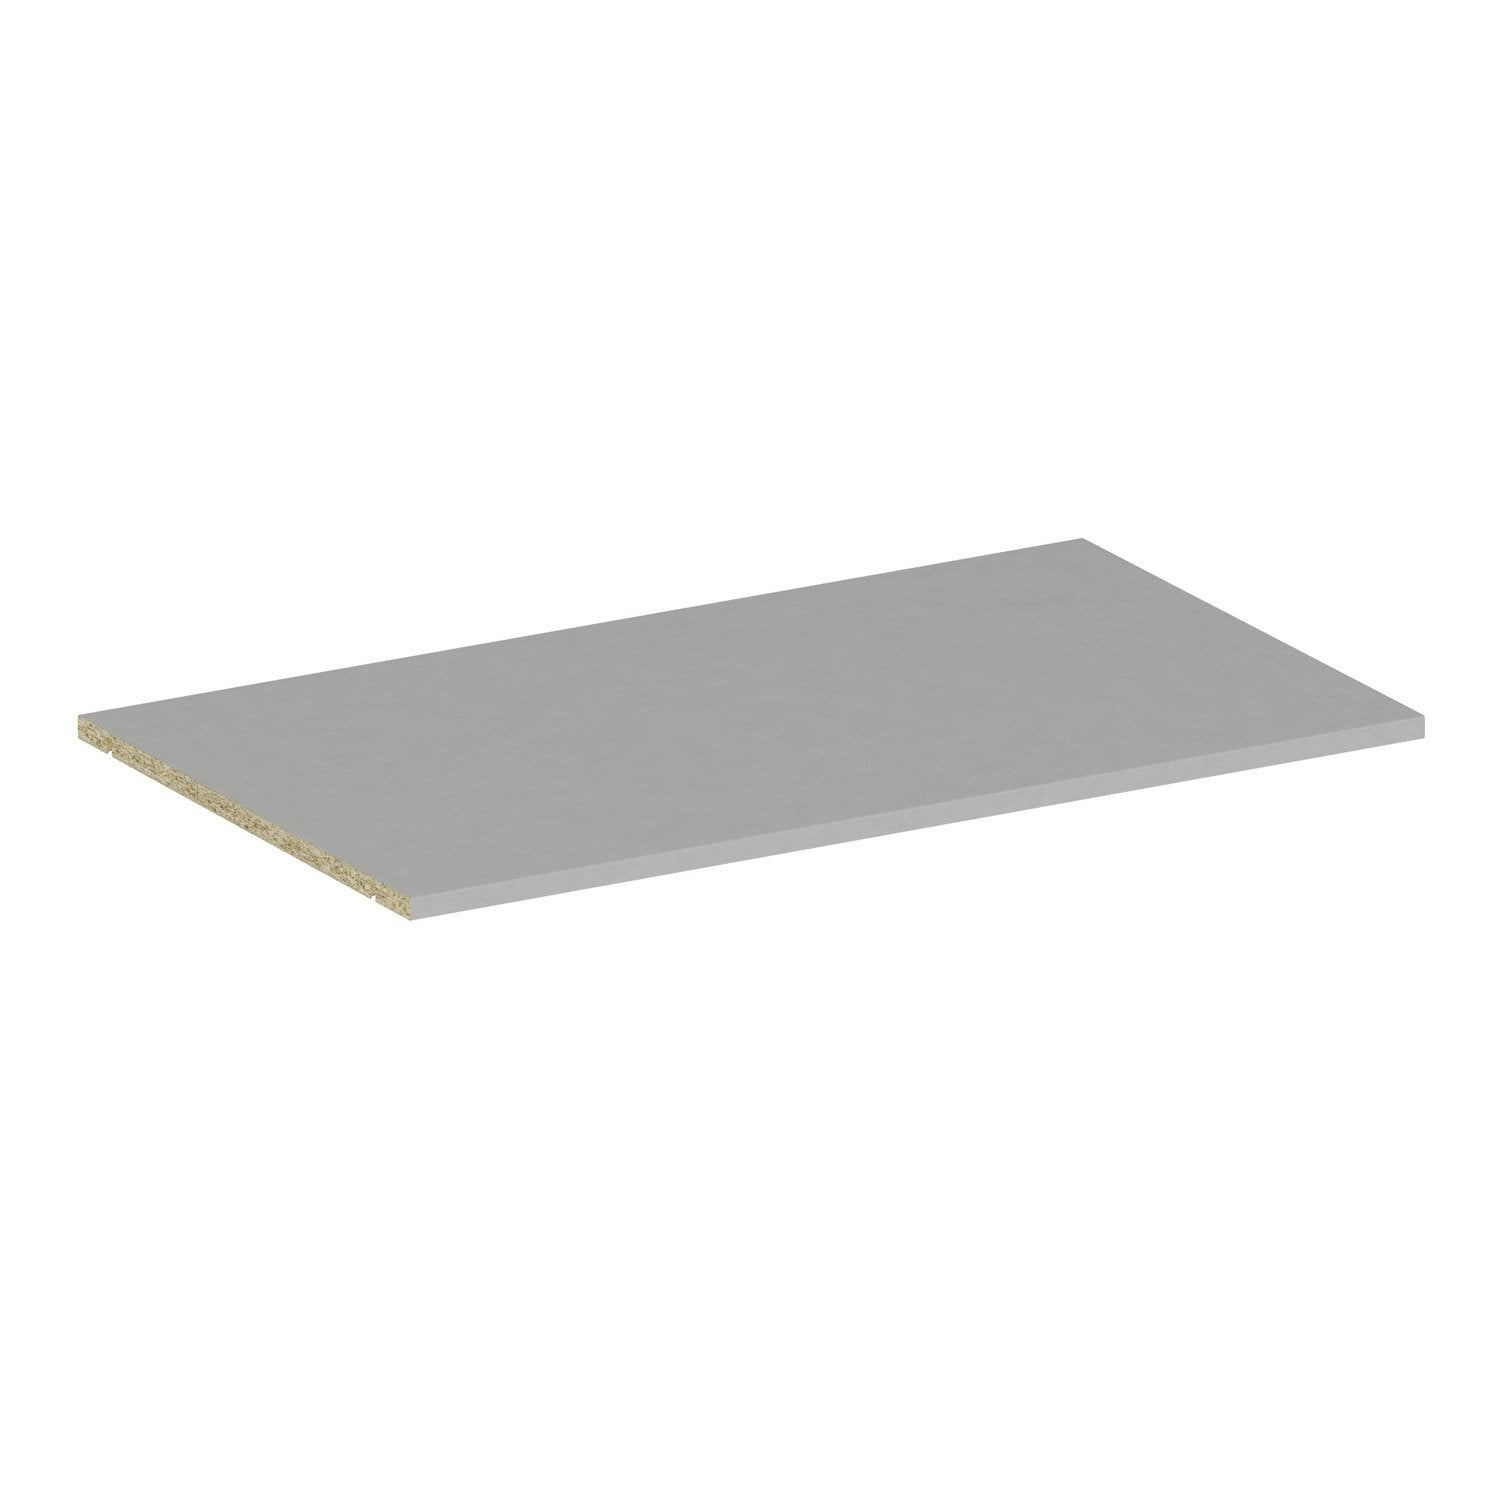 Tablette gris spaceo home x x p 1 6 cm leroy for Tablette spaceo leroy merlin